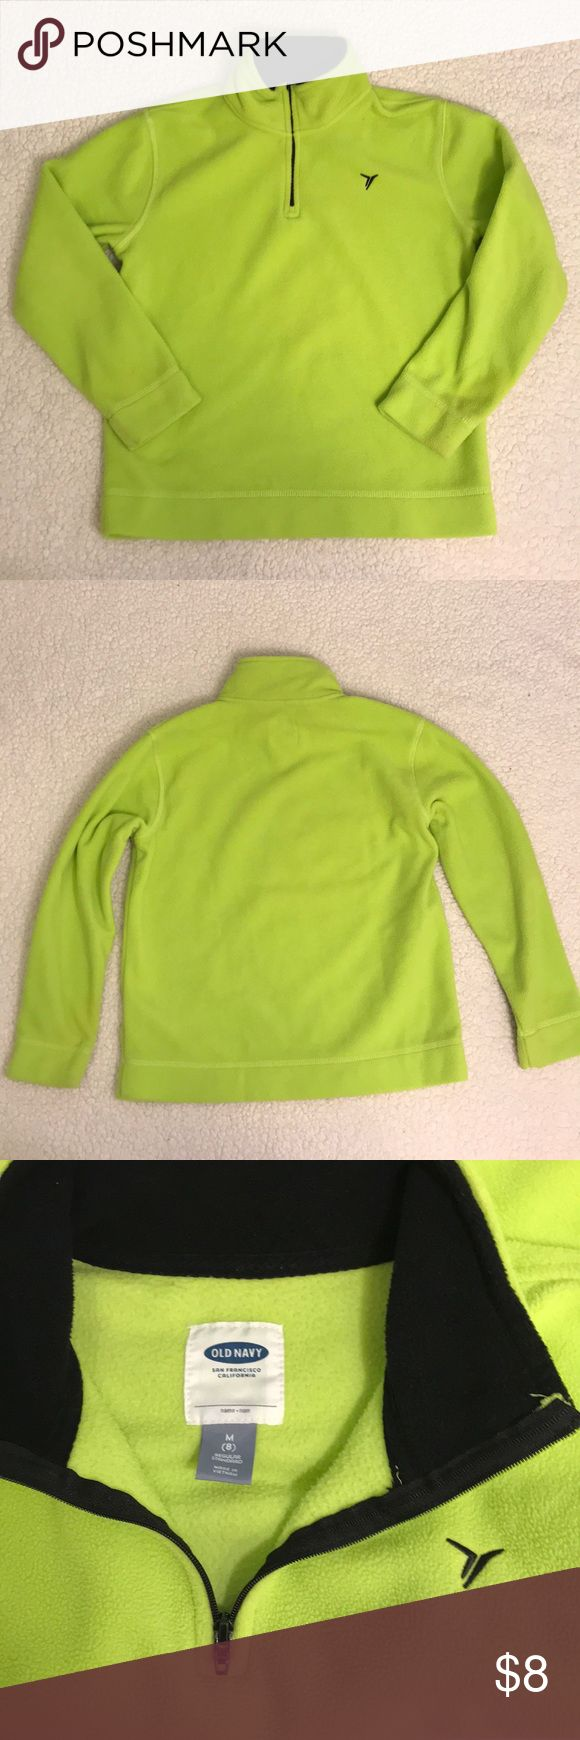 Old Navy Active Sweatshirt  Old Navy Active neon yellow/green fleece sweatshirt in great used condition. Partial zipper. Size M(8). Old Navy Shirts & Tops Sweatshirts & Hoodies